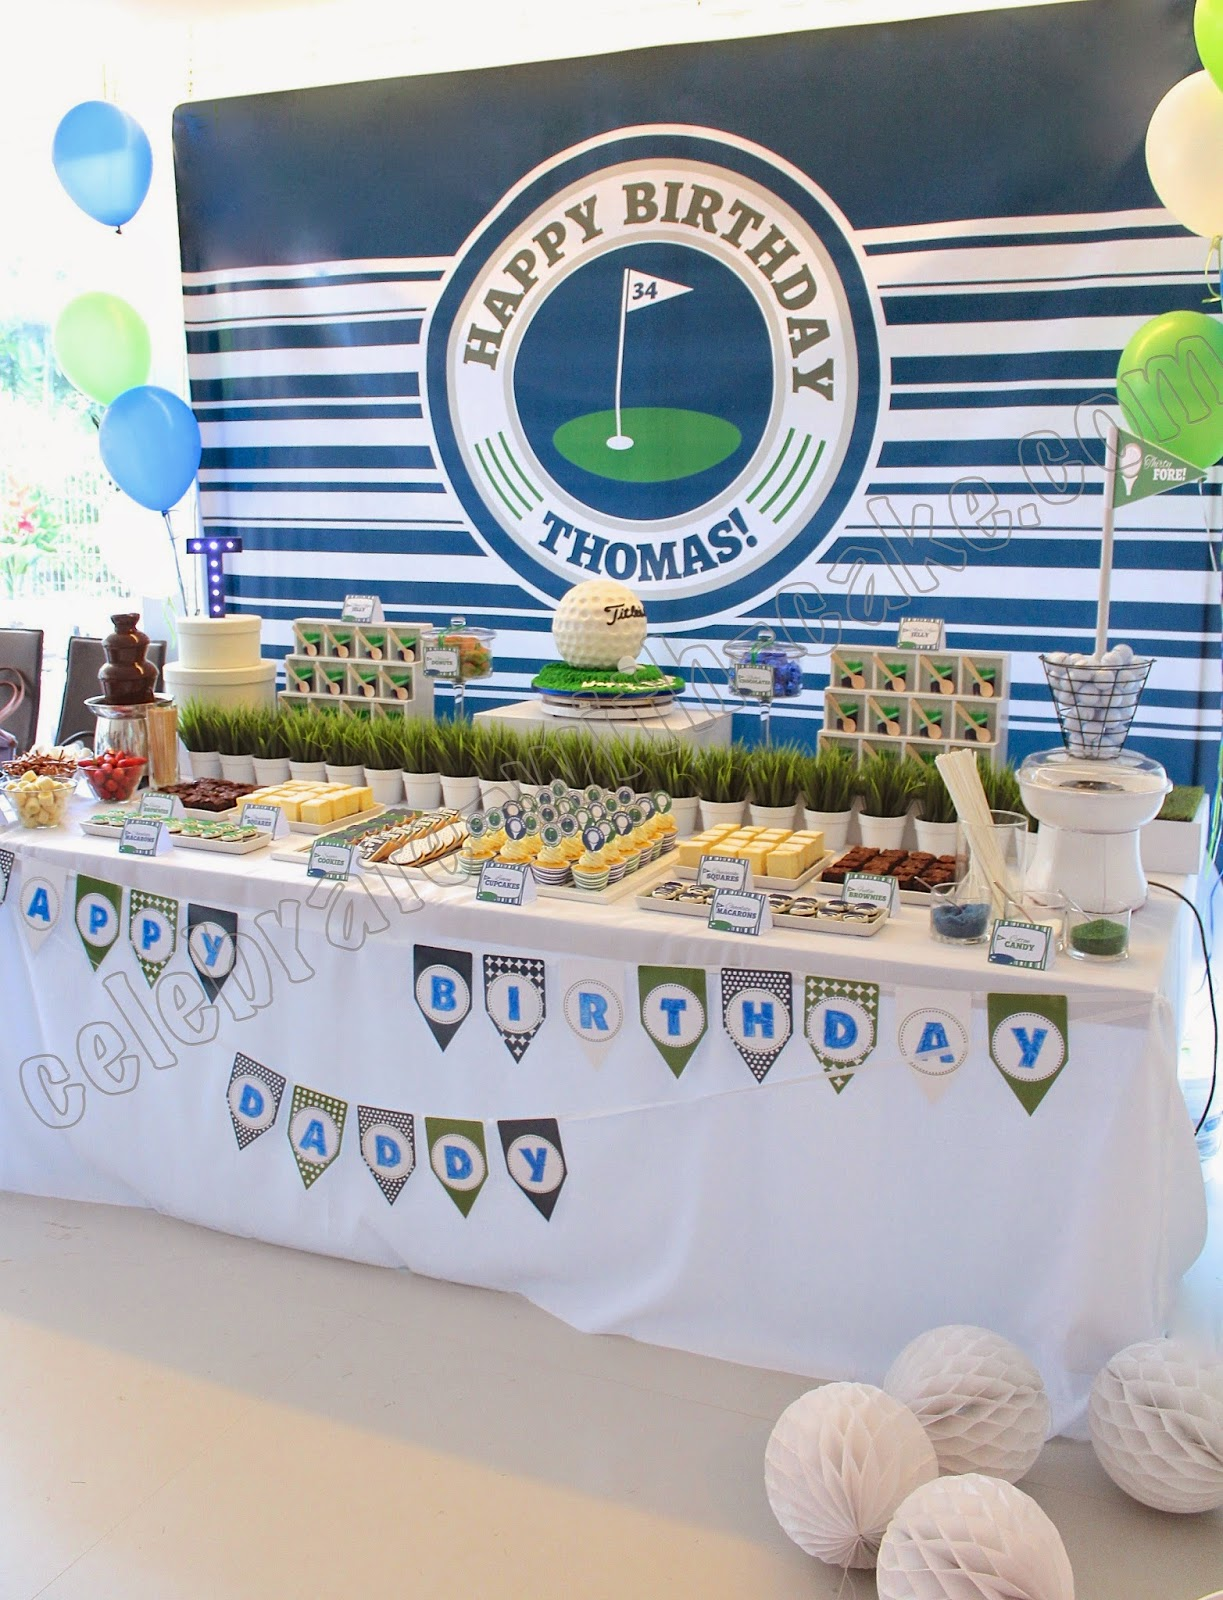 Stupendous Golf Themed Dessert Table Click Post To View More Pictures Home Interior And Landscaping Pimpapssignezvosmurscom